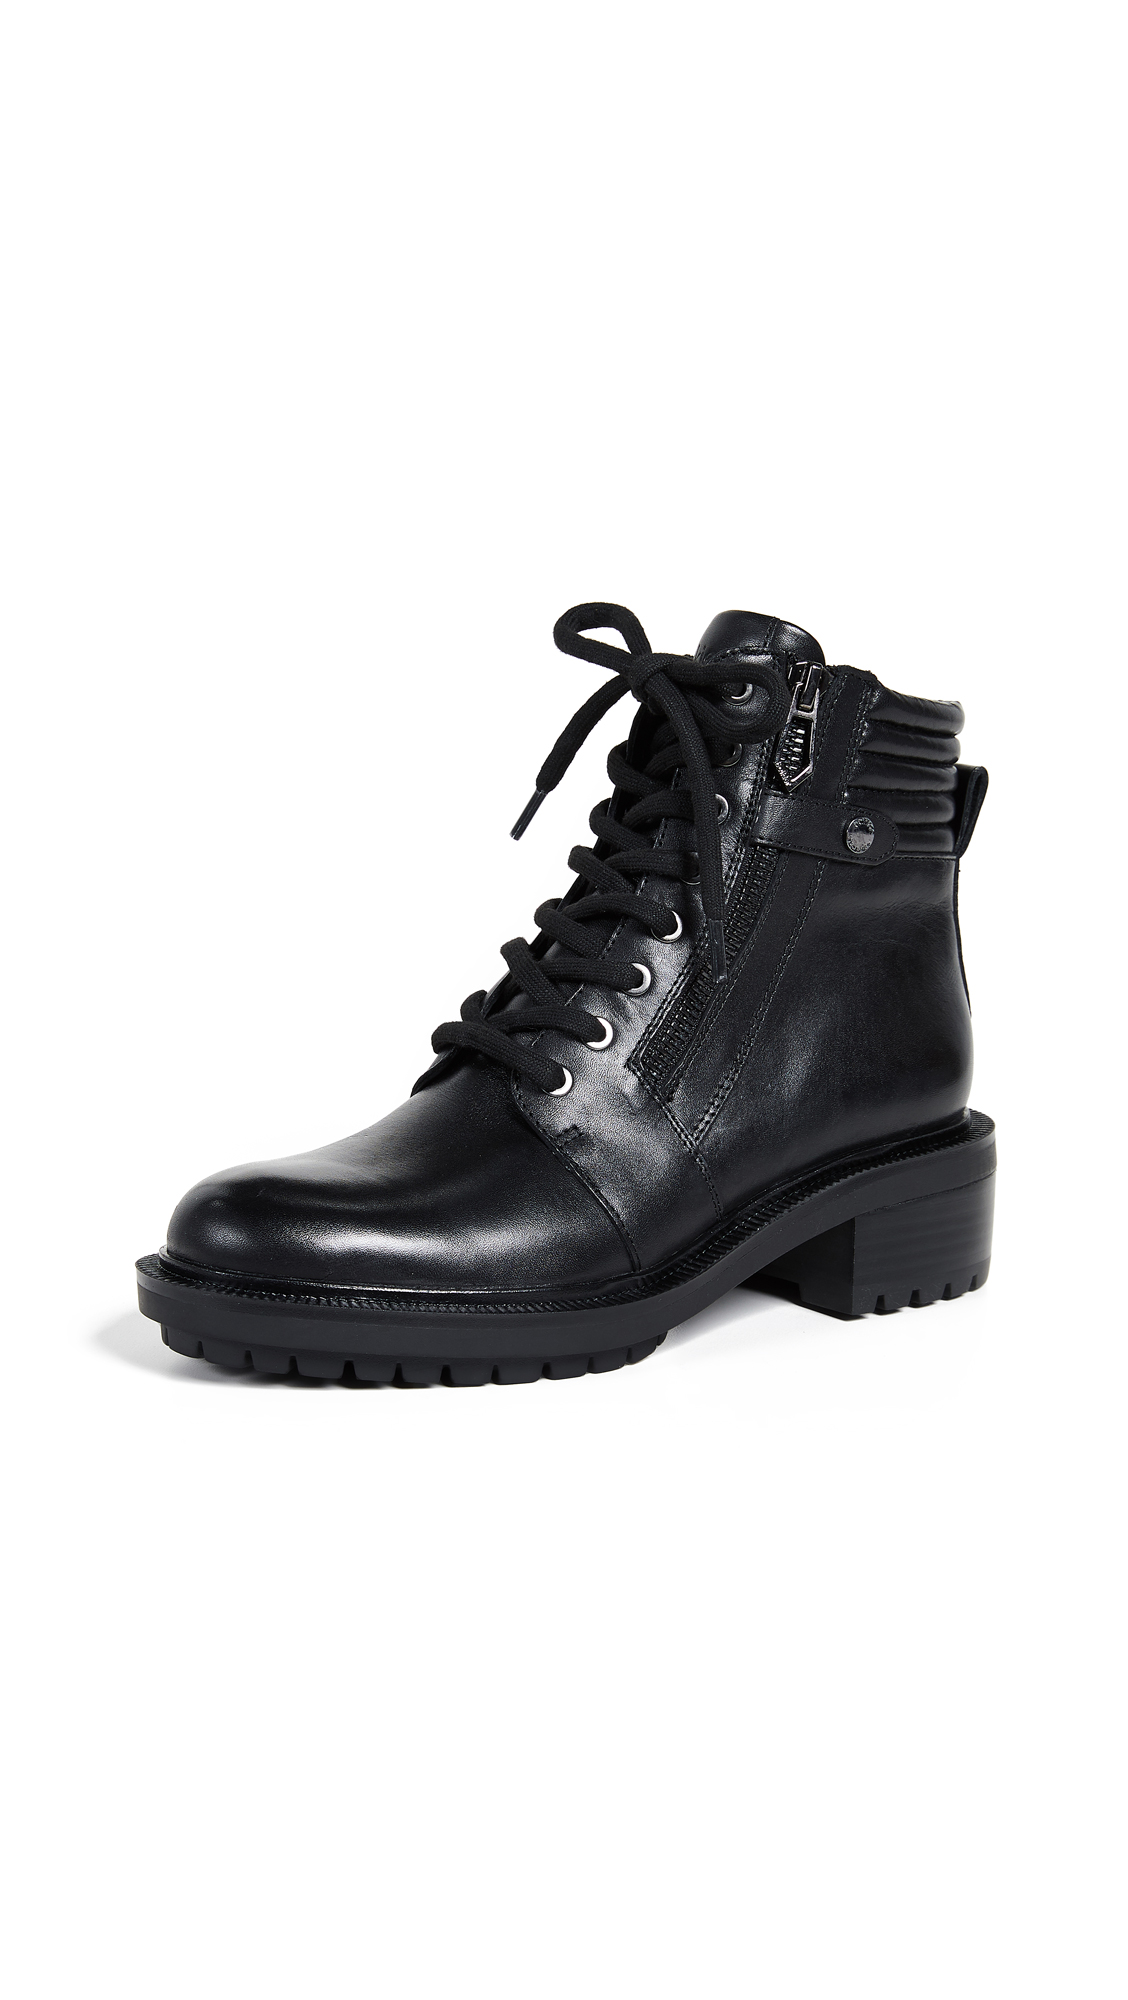 Botkier Moto Lace Up Boots - Black